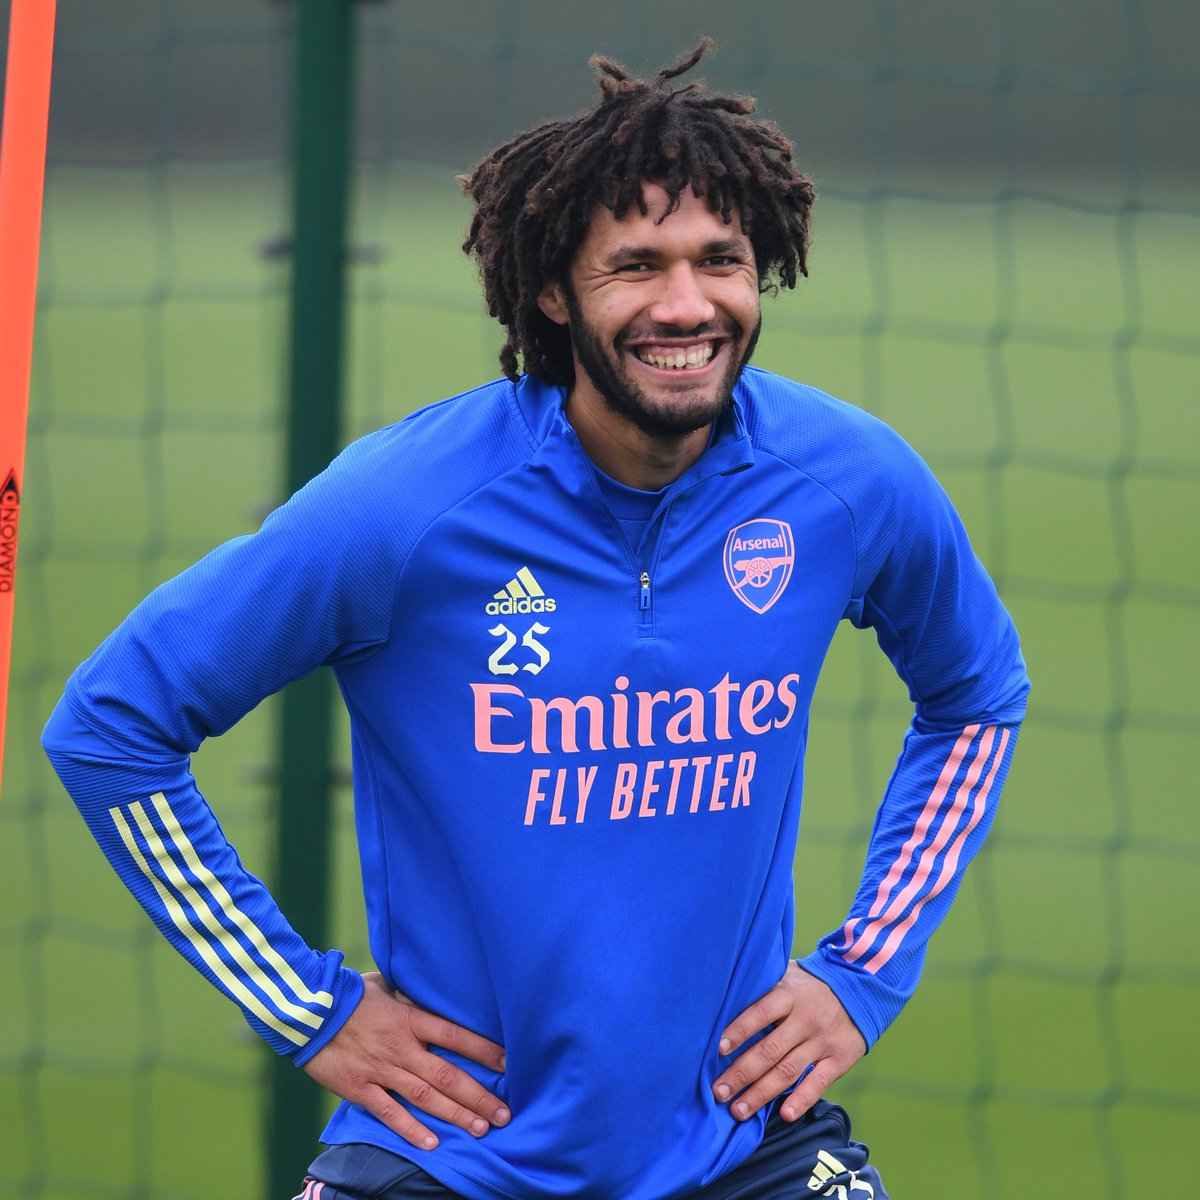 Good to have you back with us, @ElNennY 😄